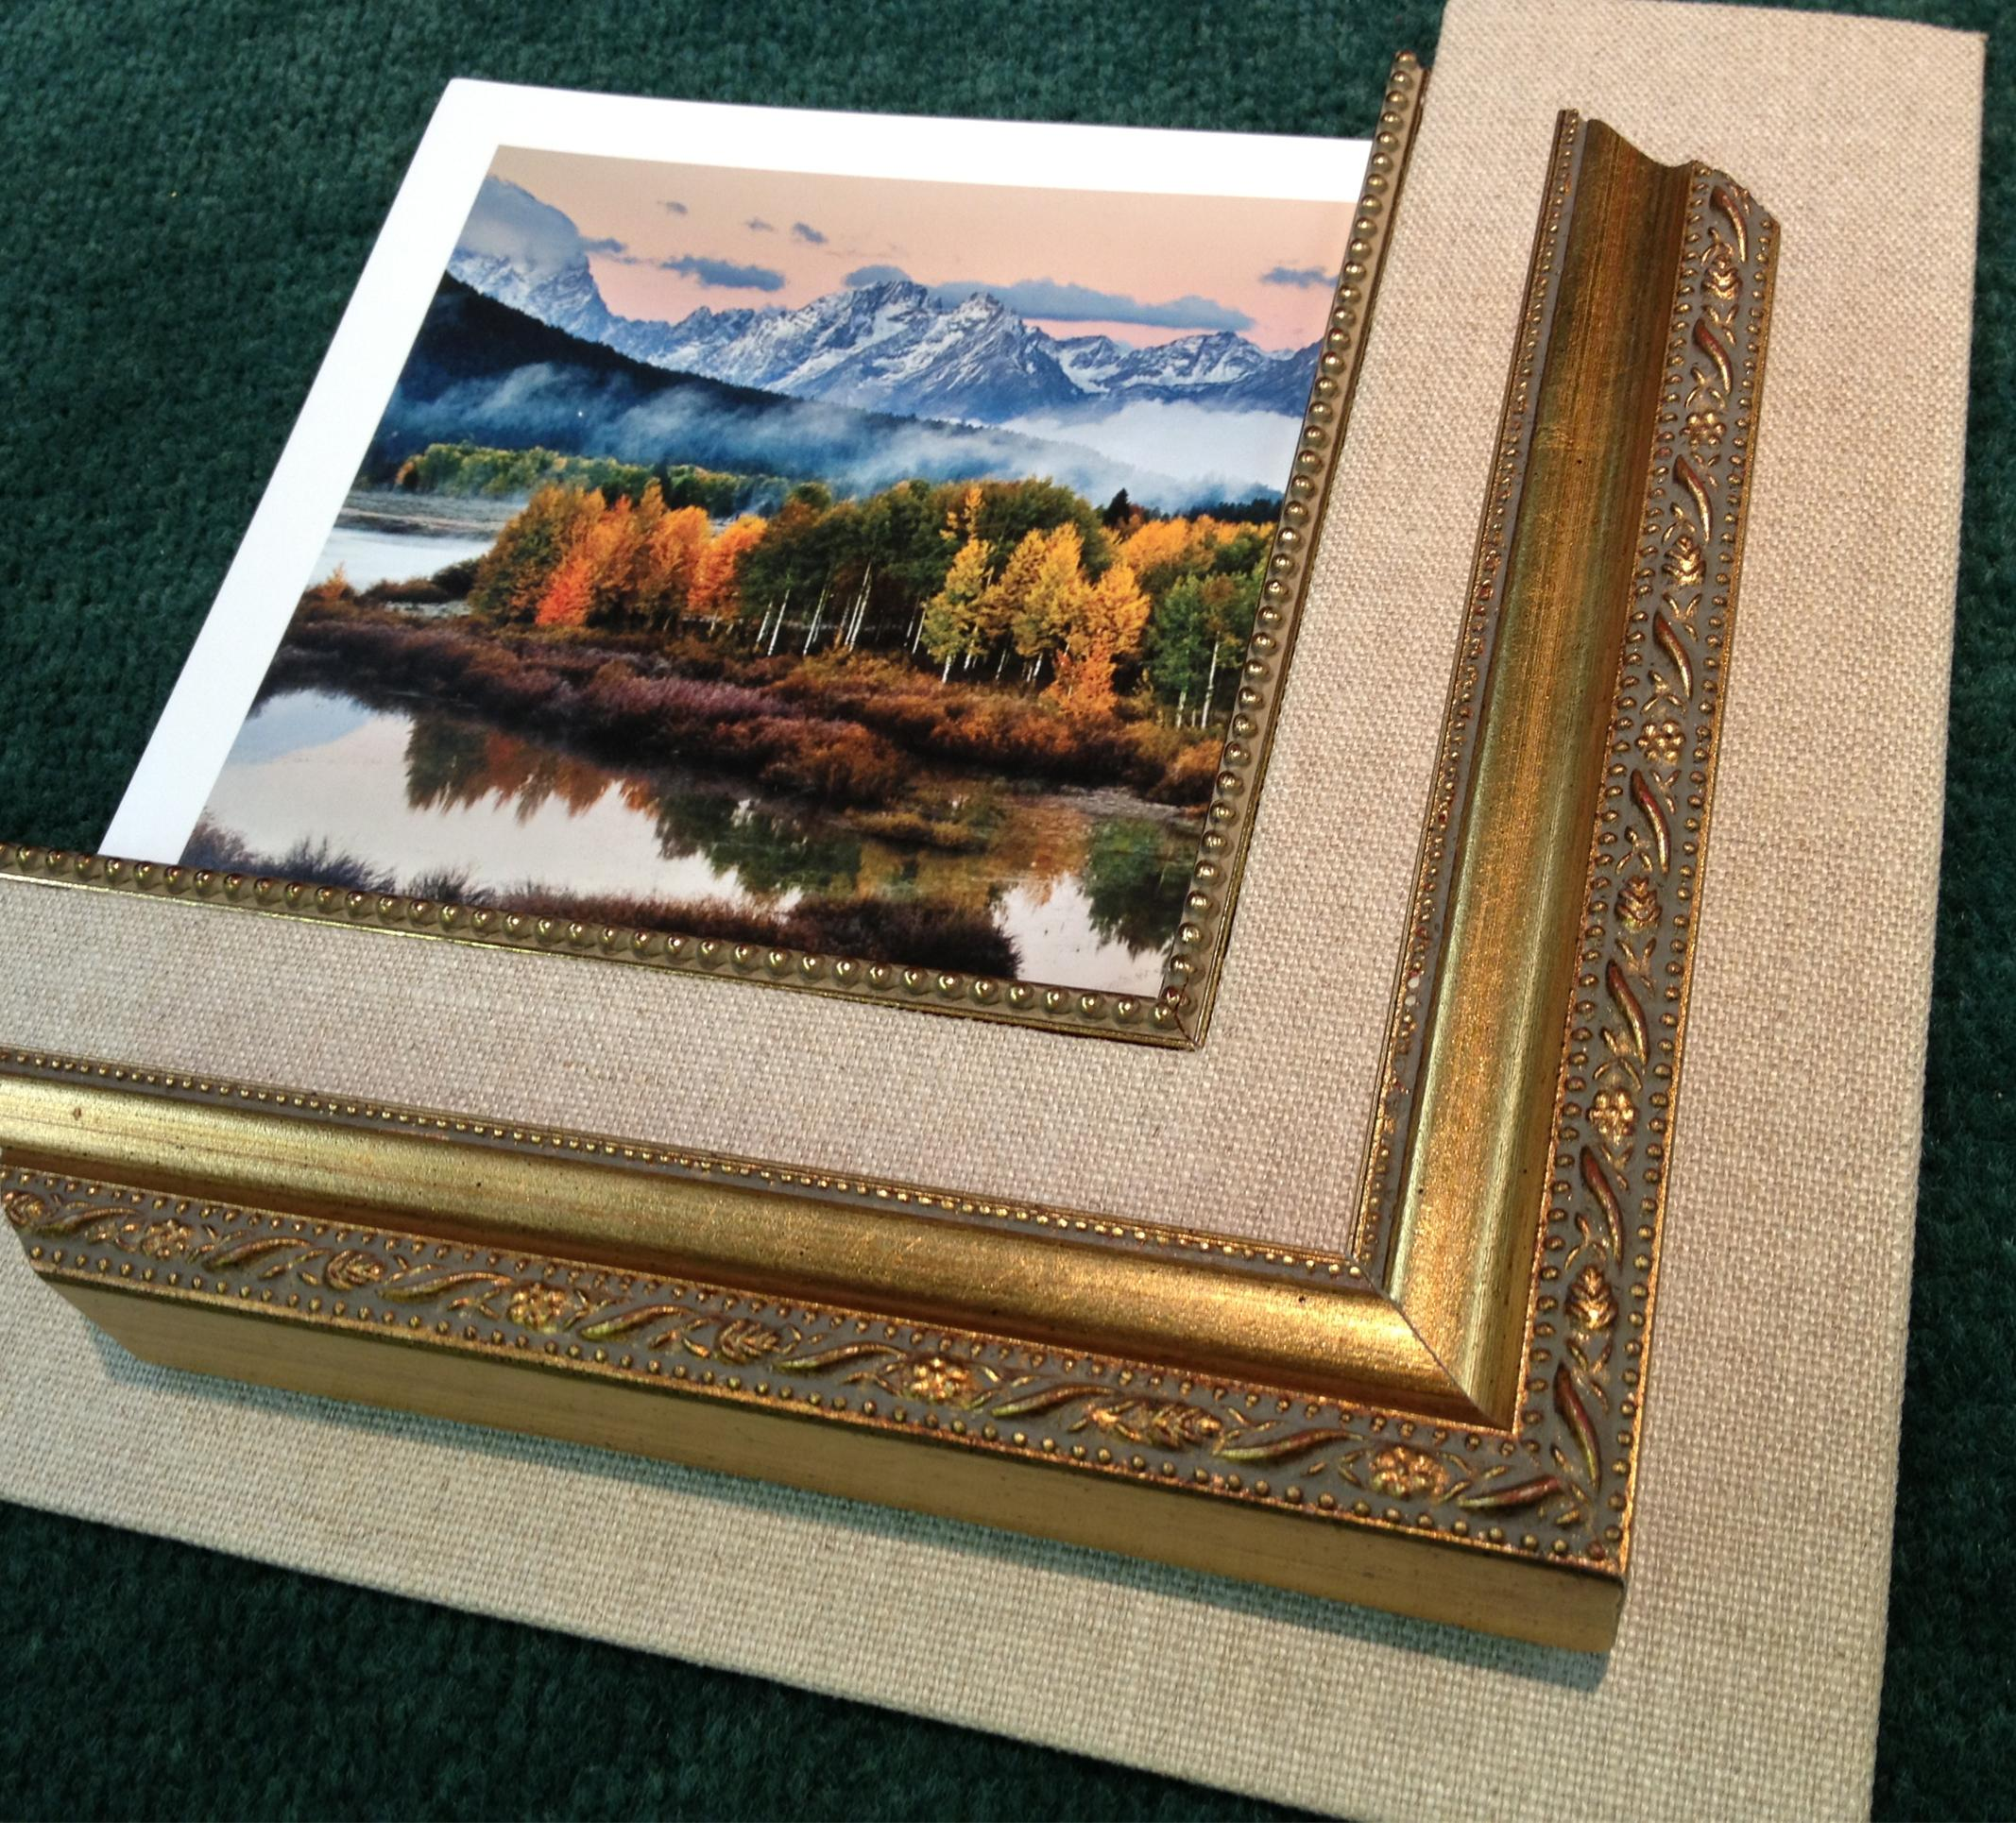 Ziegler art frame where tulsa frames pictures jeuxipadfo Image collections